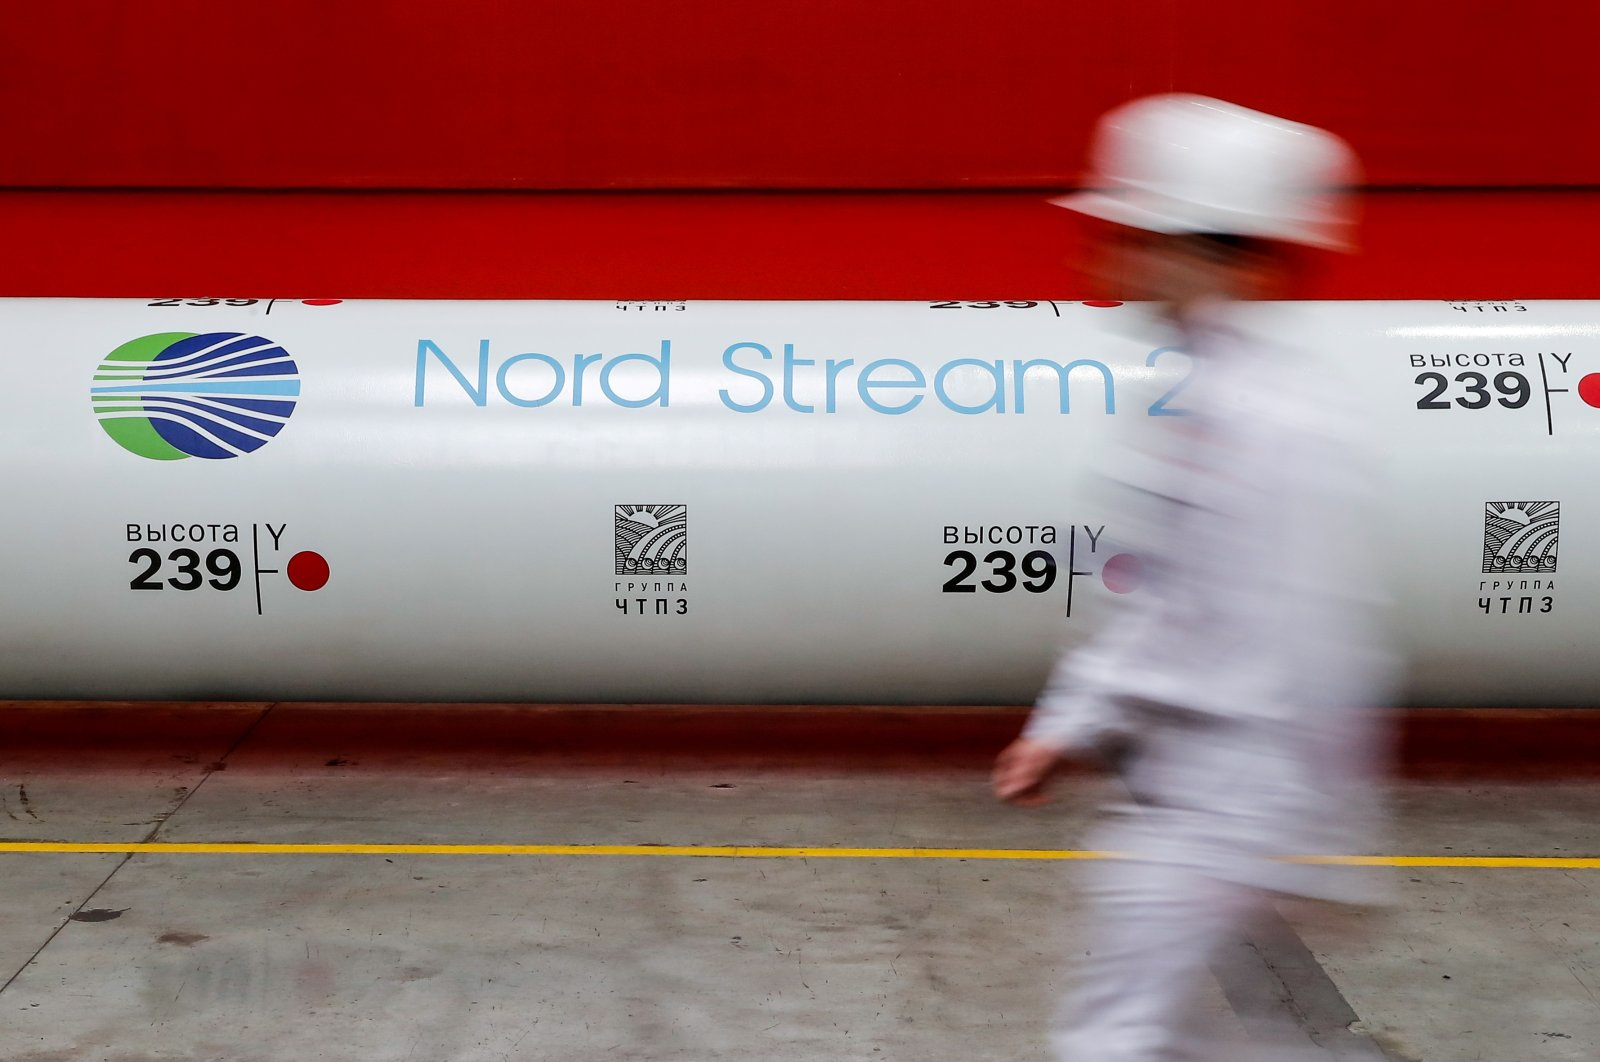 The logo of the Nord Stream 2 gas pipeline project is seen on a pipe at the Chelyabinsk pipe-rolling plant owned by ChelPipe Group in Chelyabinsk, Russia, Feb. 26, 2020. (Reuters Photo)